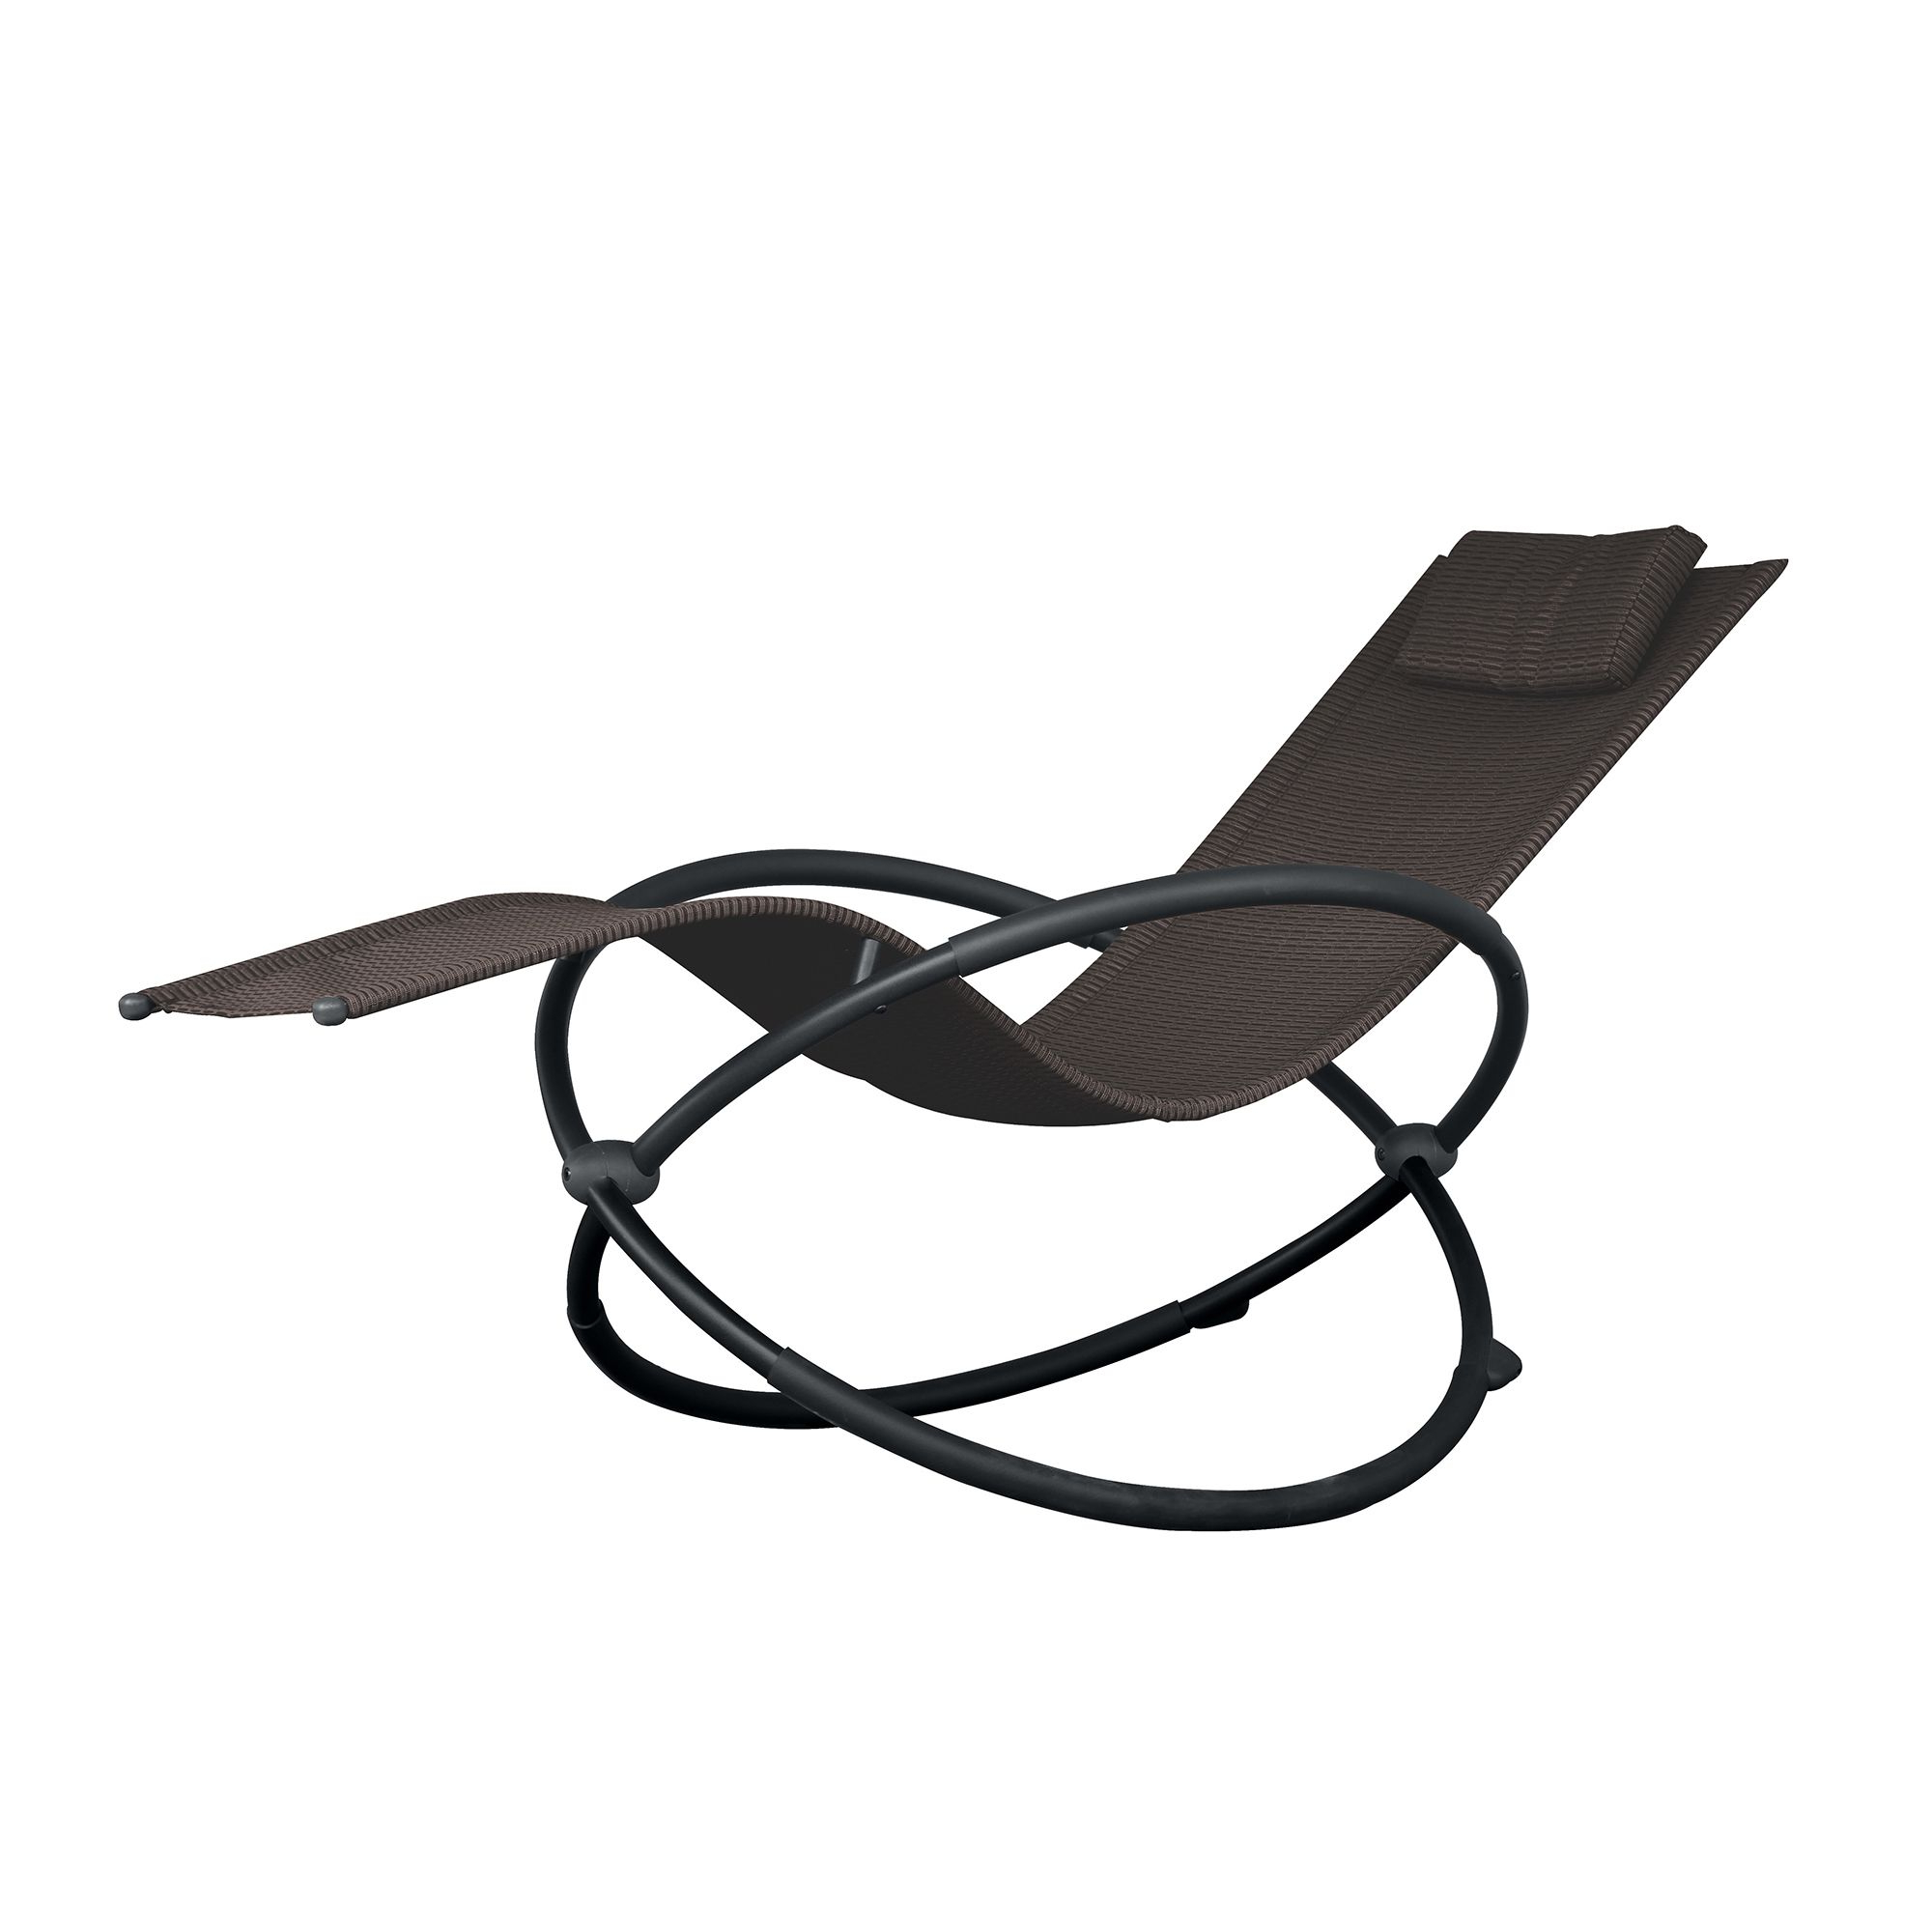 Famous Corliving Riverside Textured Loungers In Phat Tommy Orbital Lounger (sienna), Grey, Patio Furniture (View 21 of 25)